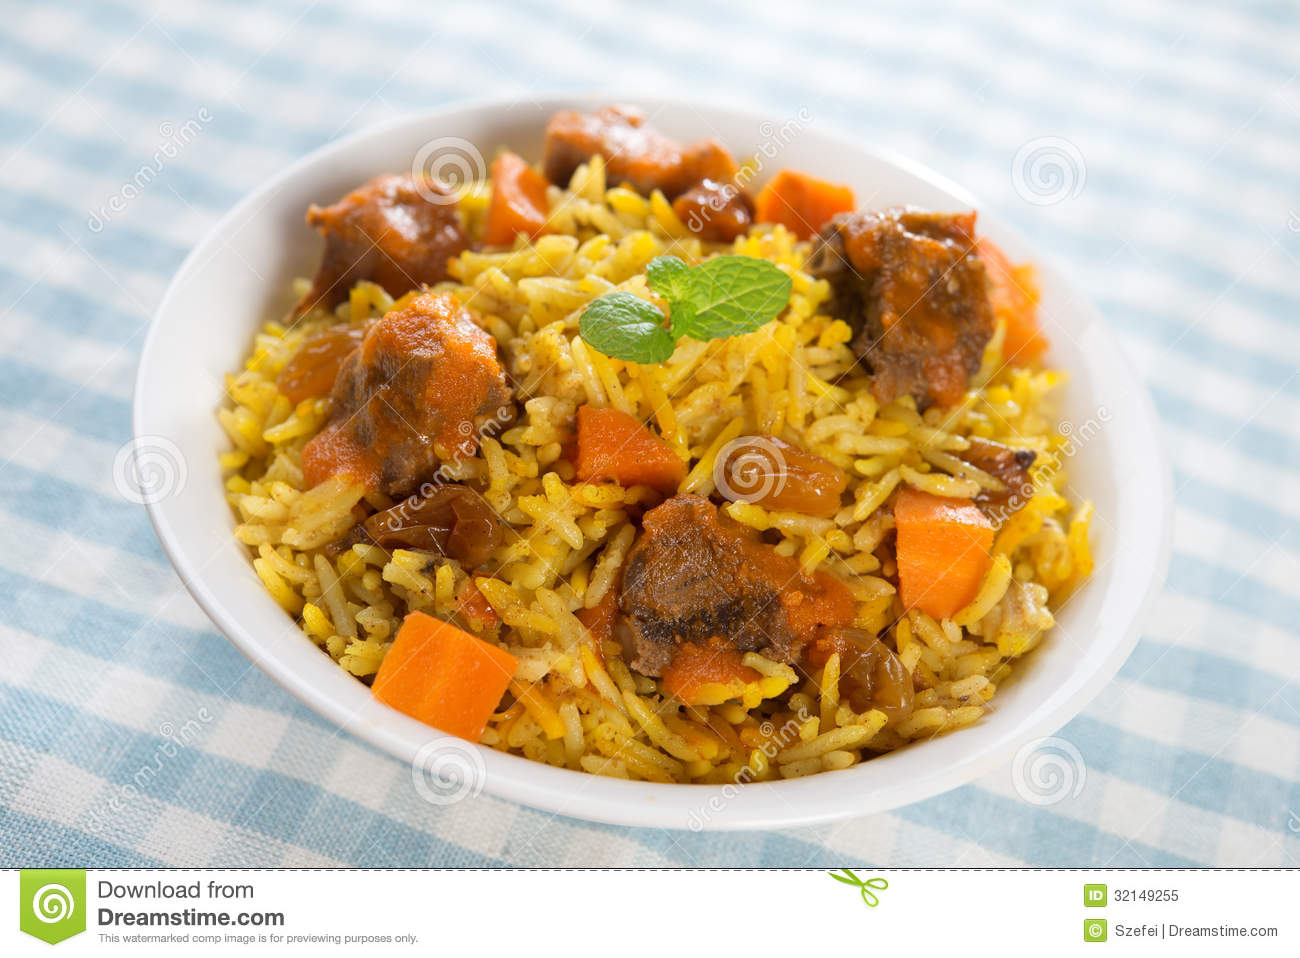 Arab food royalty free stock photo image 32149255 for Arabic cuisine food